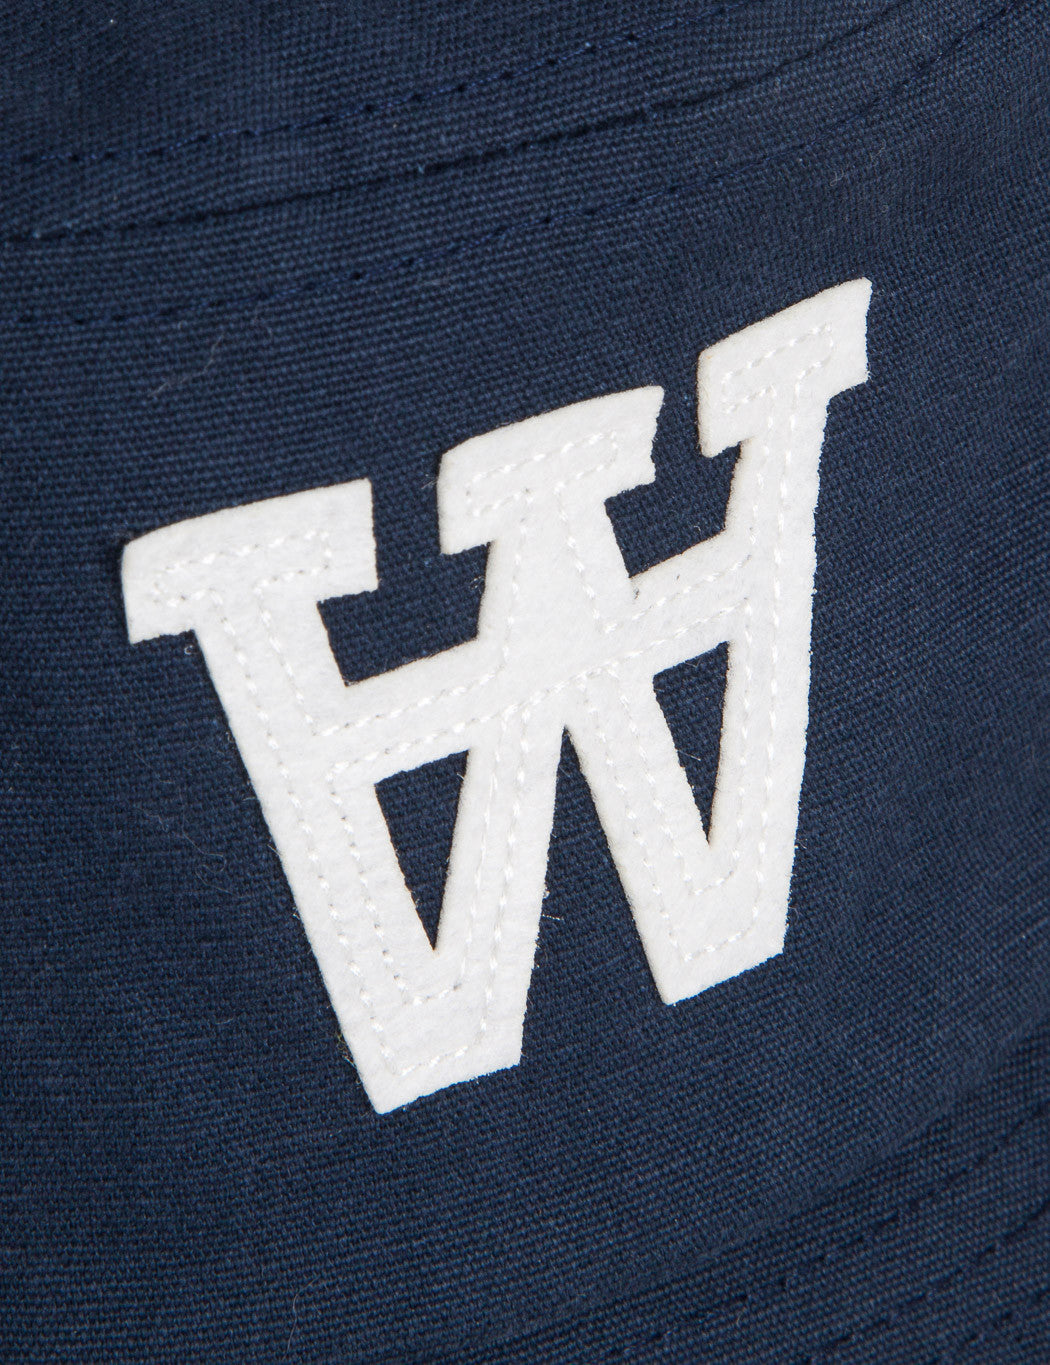 Wood Wood AA Logo Bucket Hat - Dark Navy